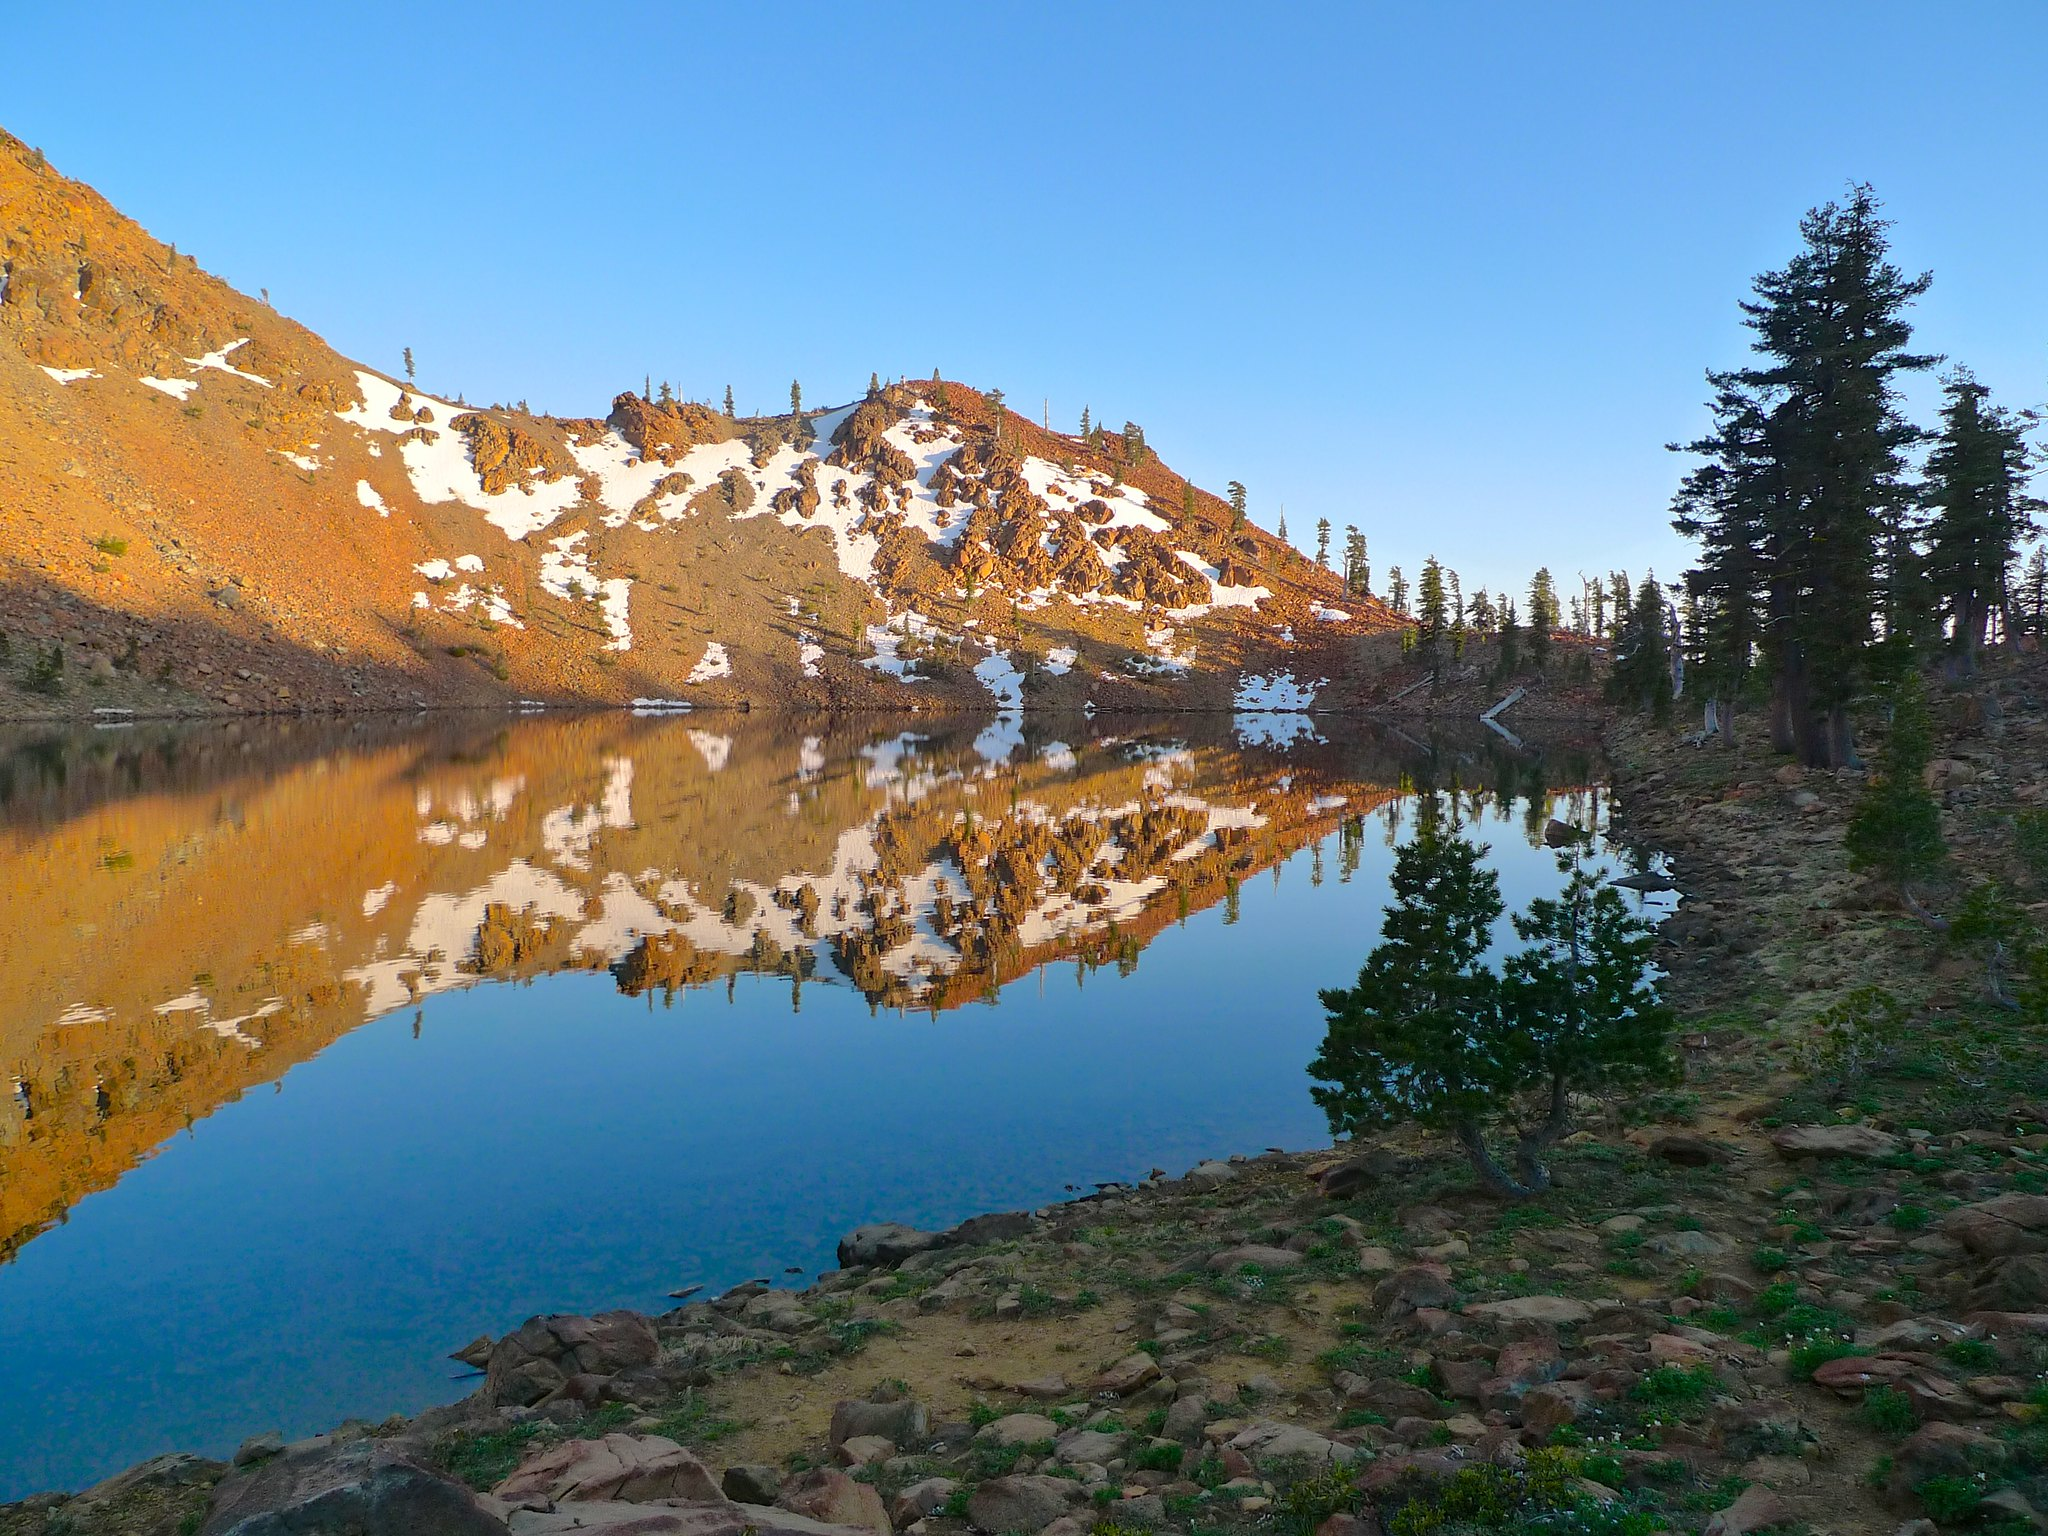 Sunset reflections at Summit Lake.